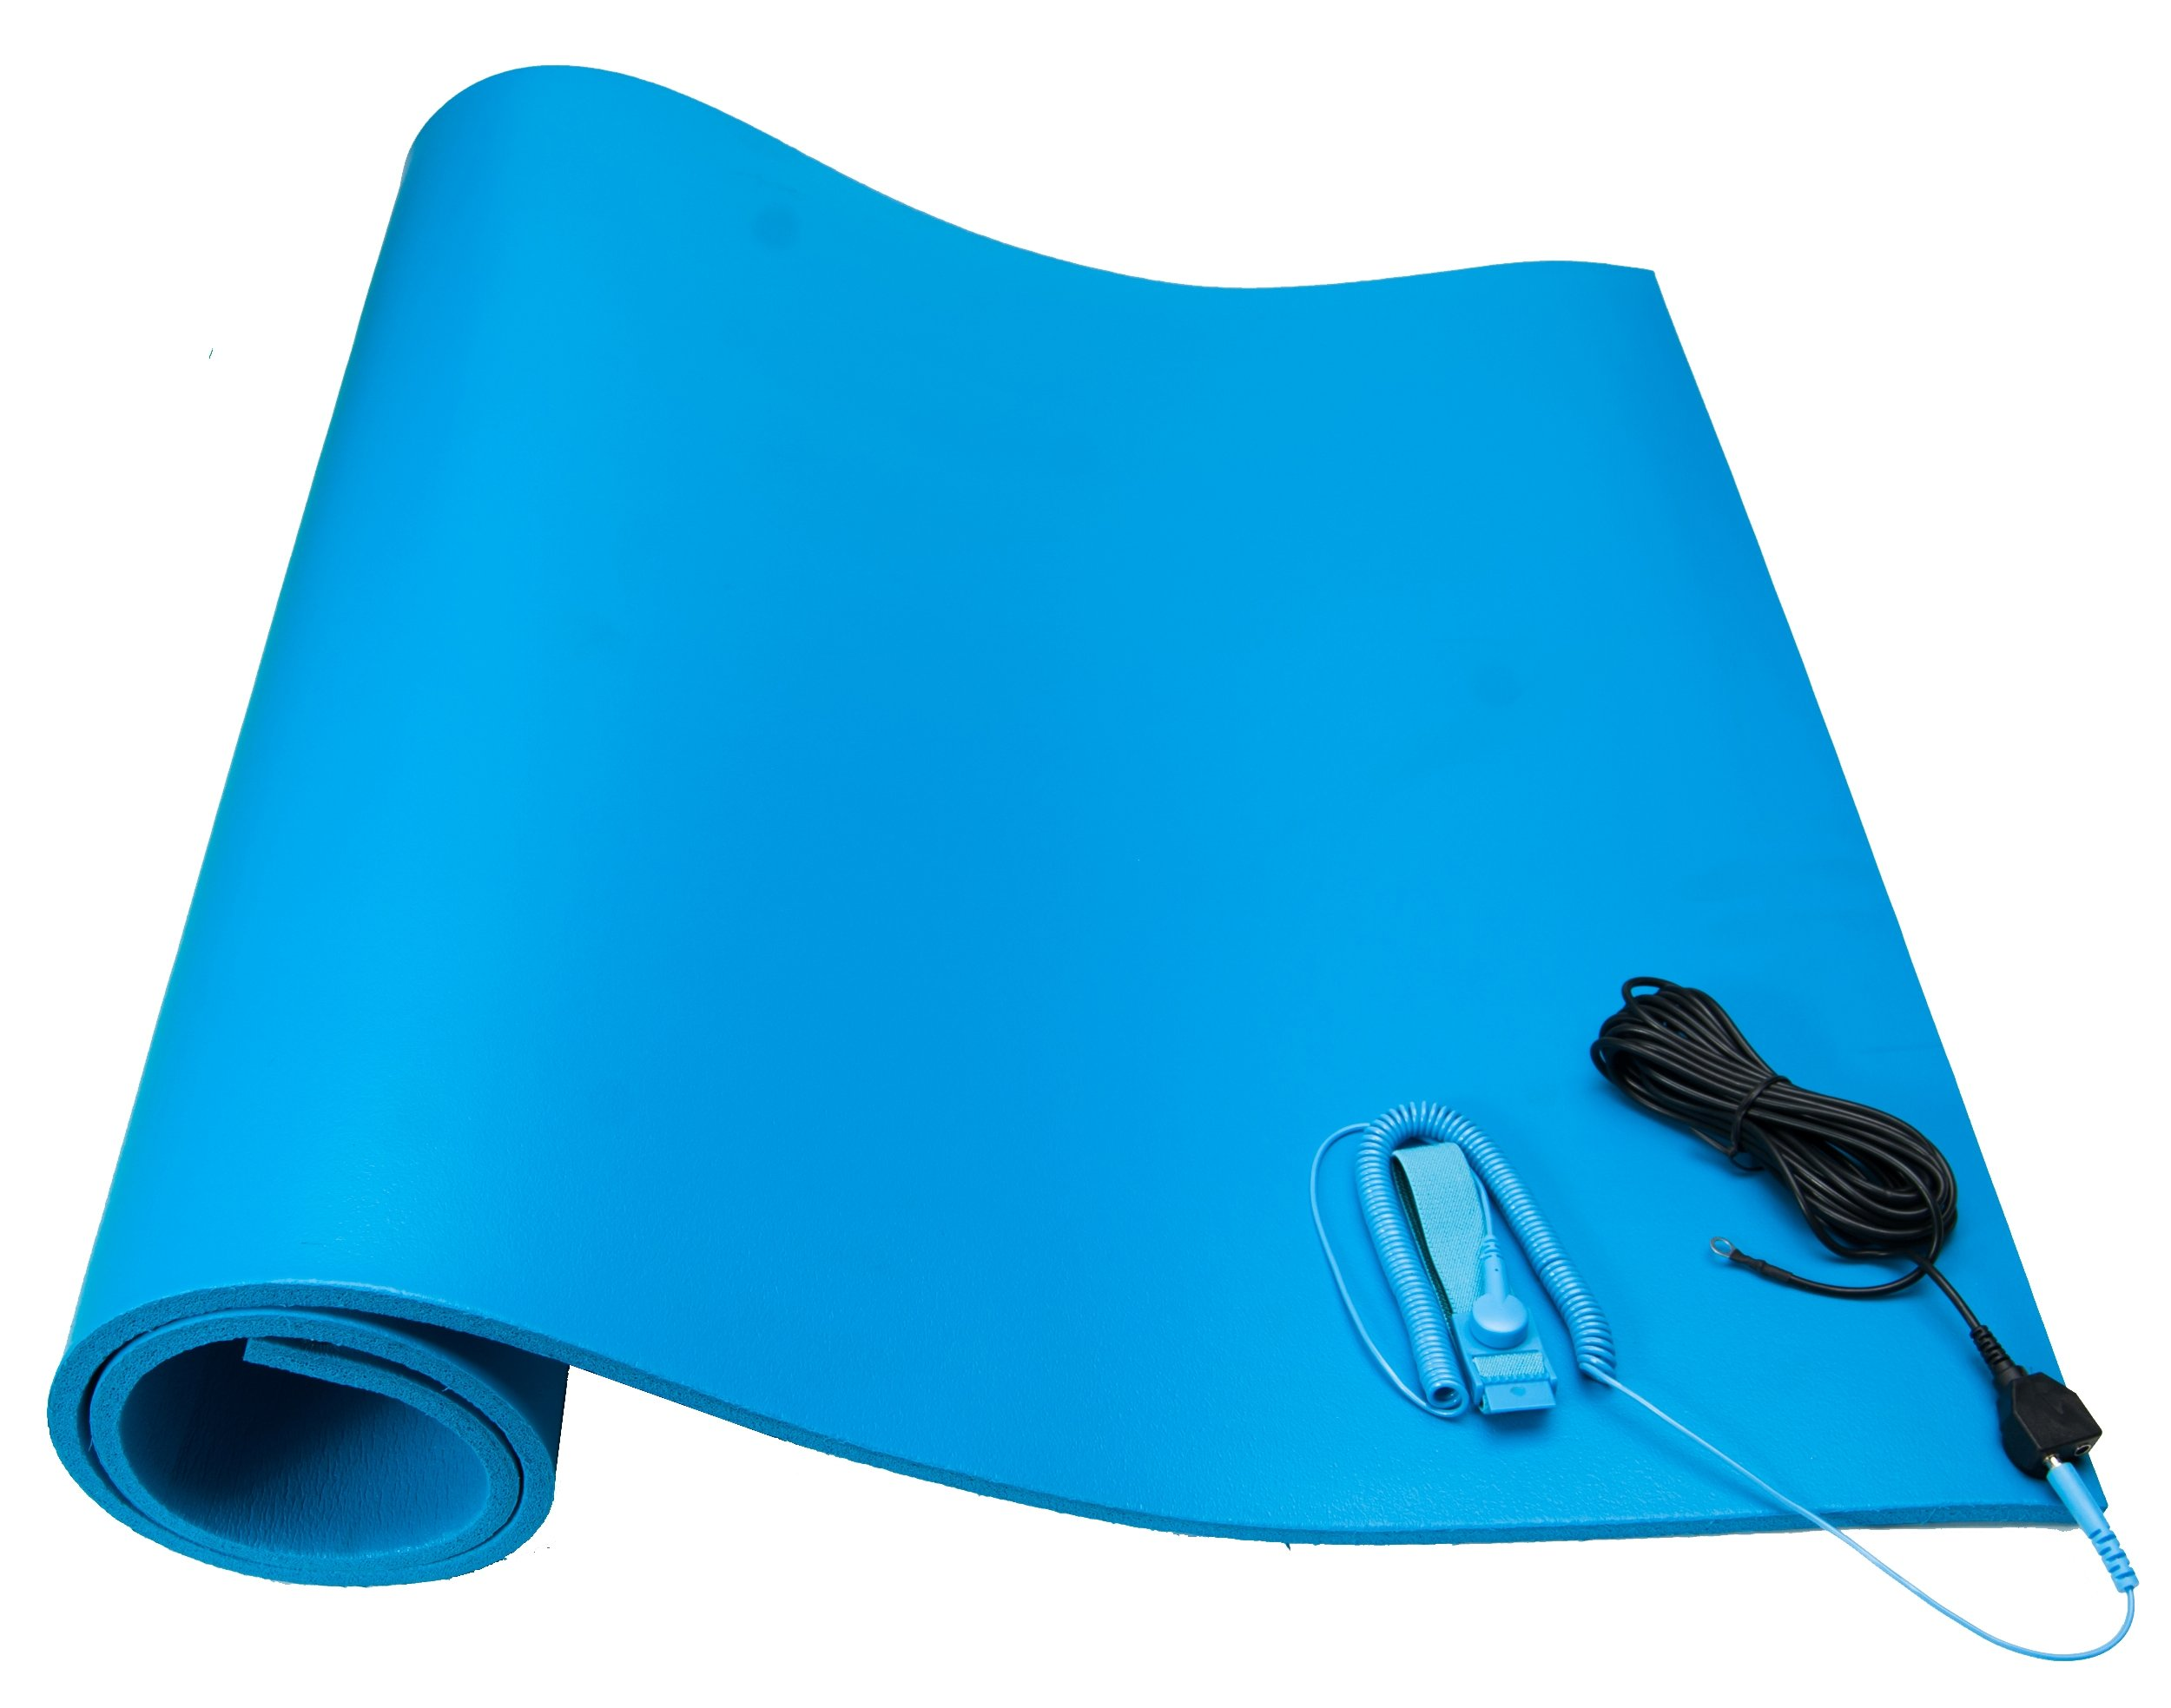 Bertech ESD Foam Mat Kit with a Wrist Strap and Grounding Cord, 2.5' Wide x 6' Long x 0.375'' Thick, Blue, Made in USA